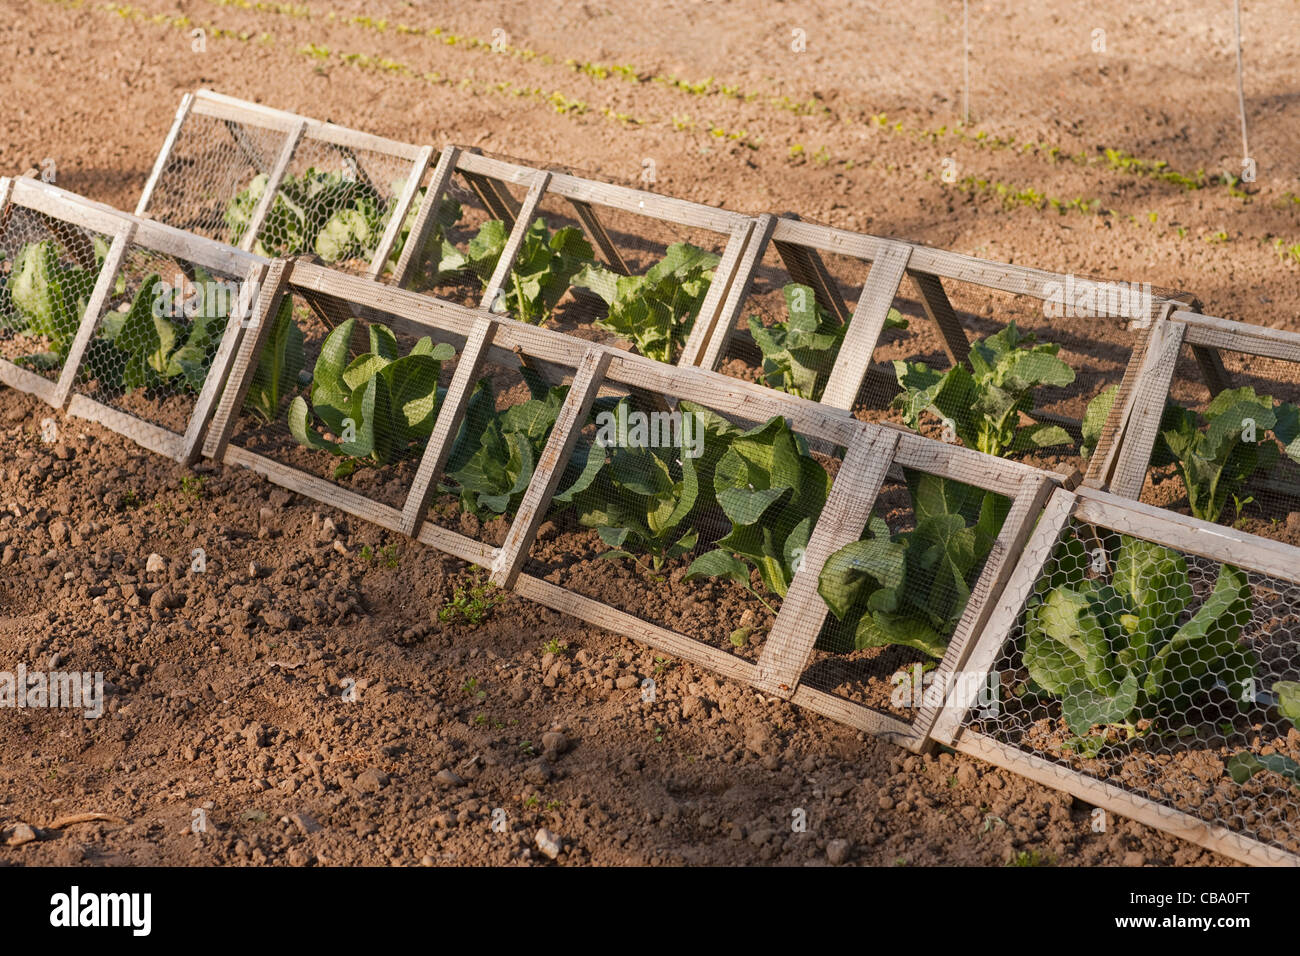 Allotment with cabbage plants protected by netting screens against pests Rabbits and White Butterfies preventing Stock Photo